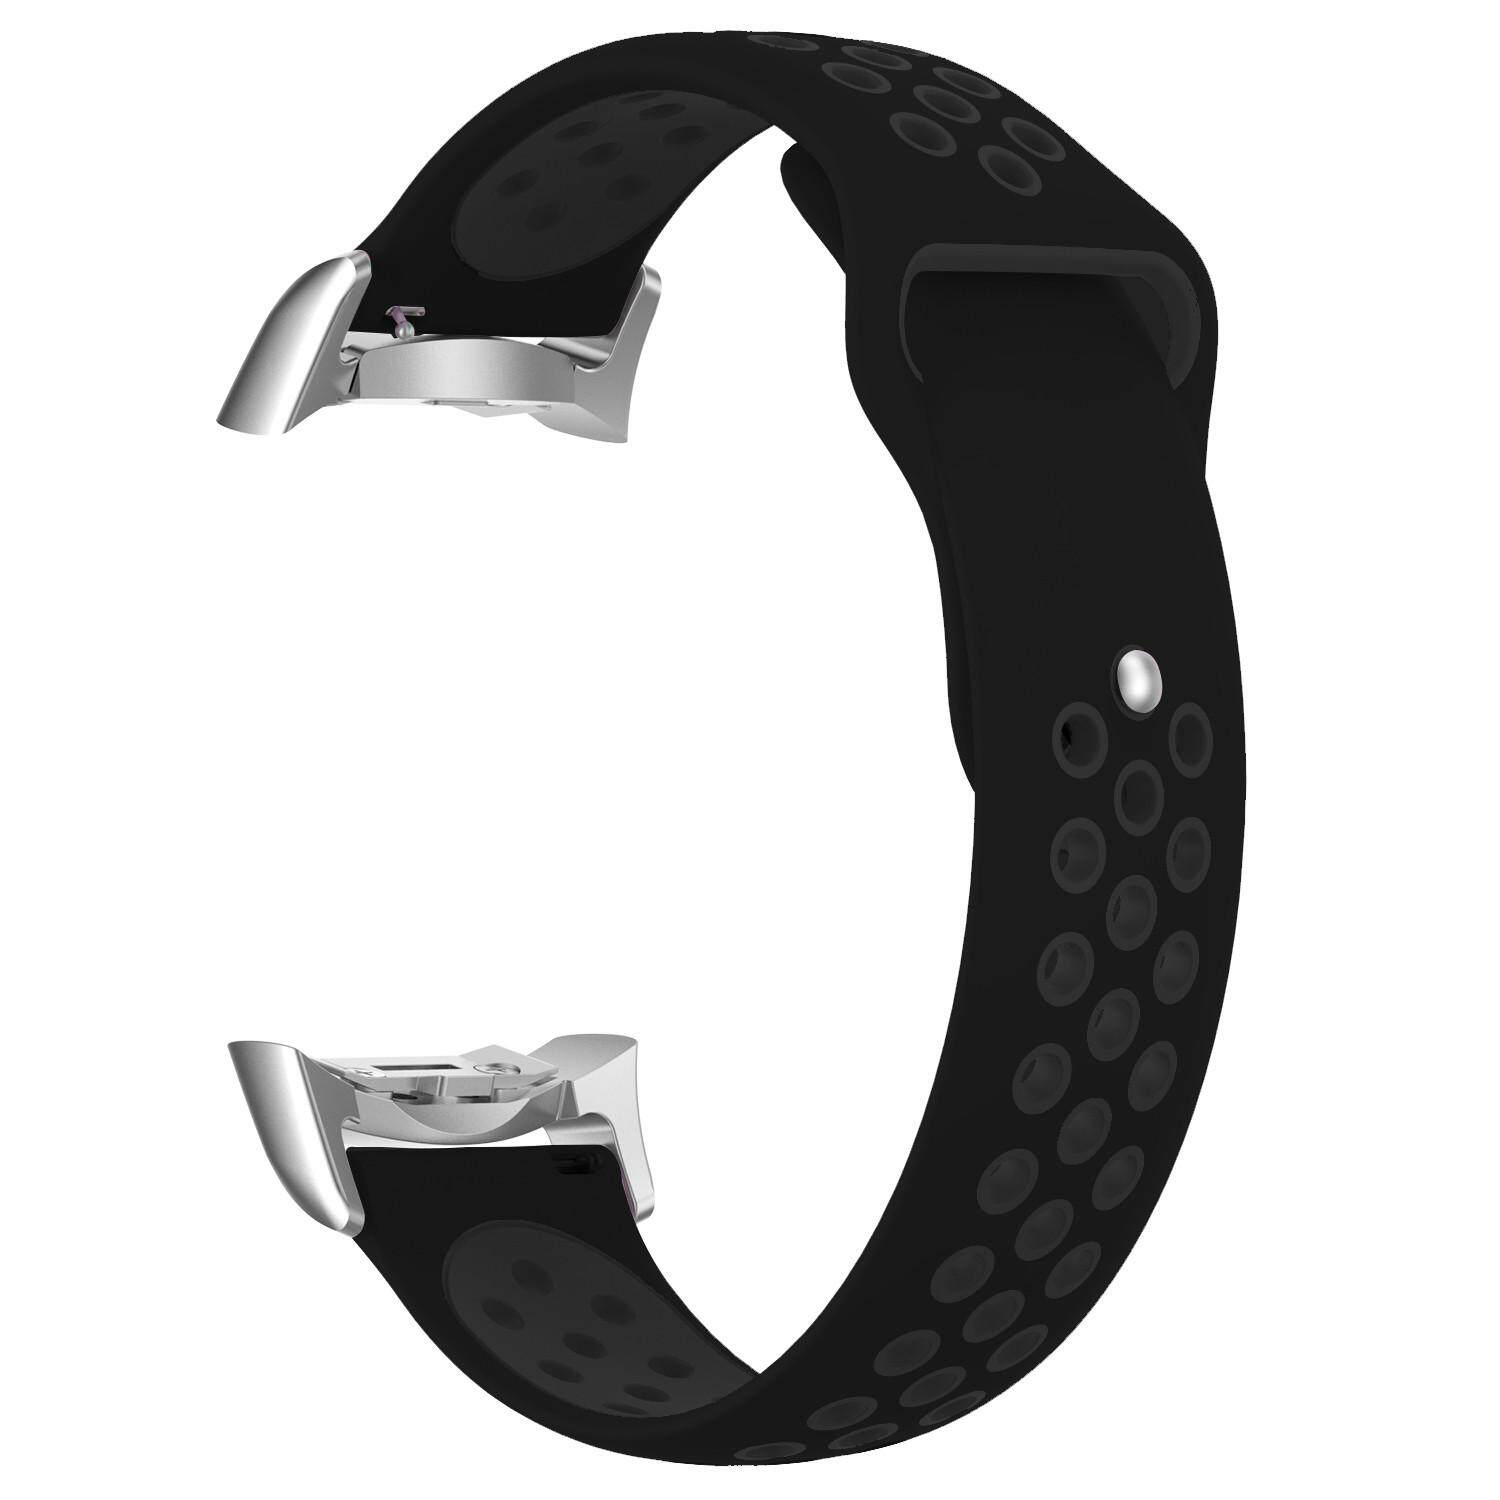 World Deal Silicone Sports Watch Band For Samsung Gear S2 SM-R720 / SM-R730 with Adapter